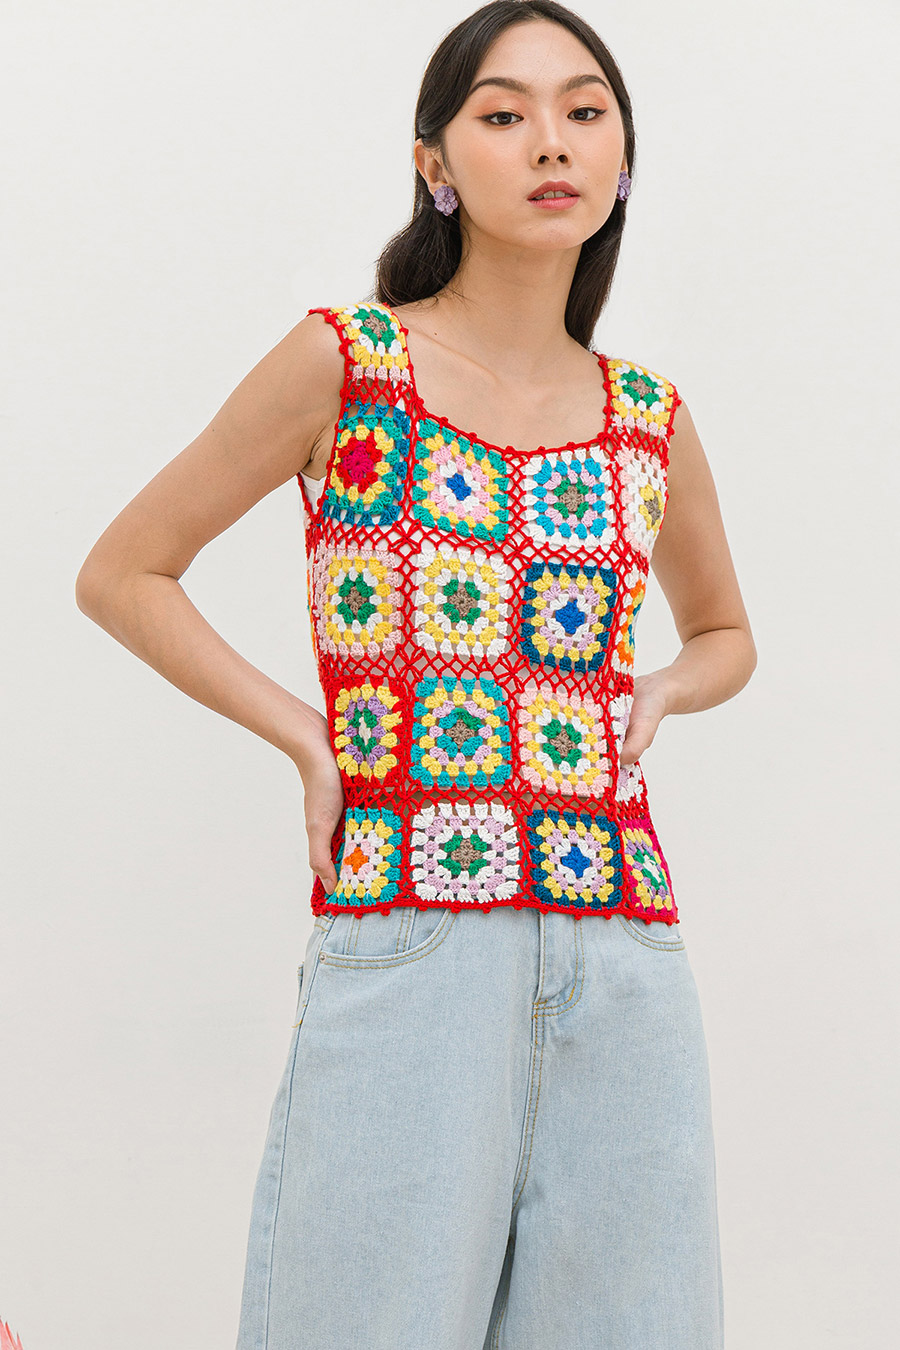 *SALE* TAZU TOP - PATCHWORK